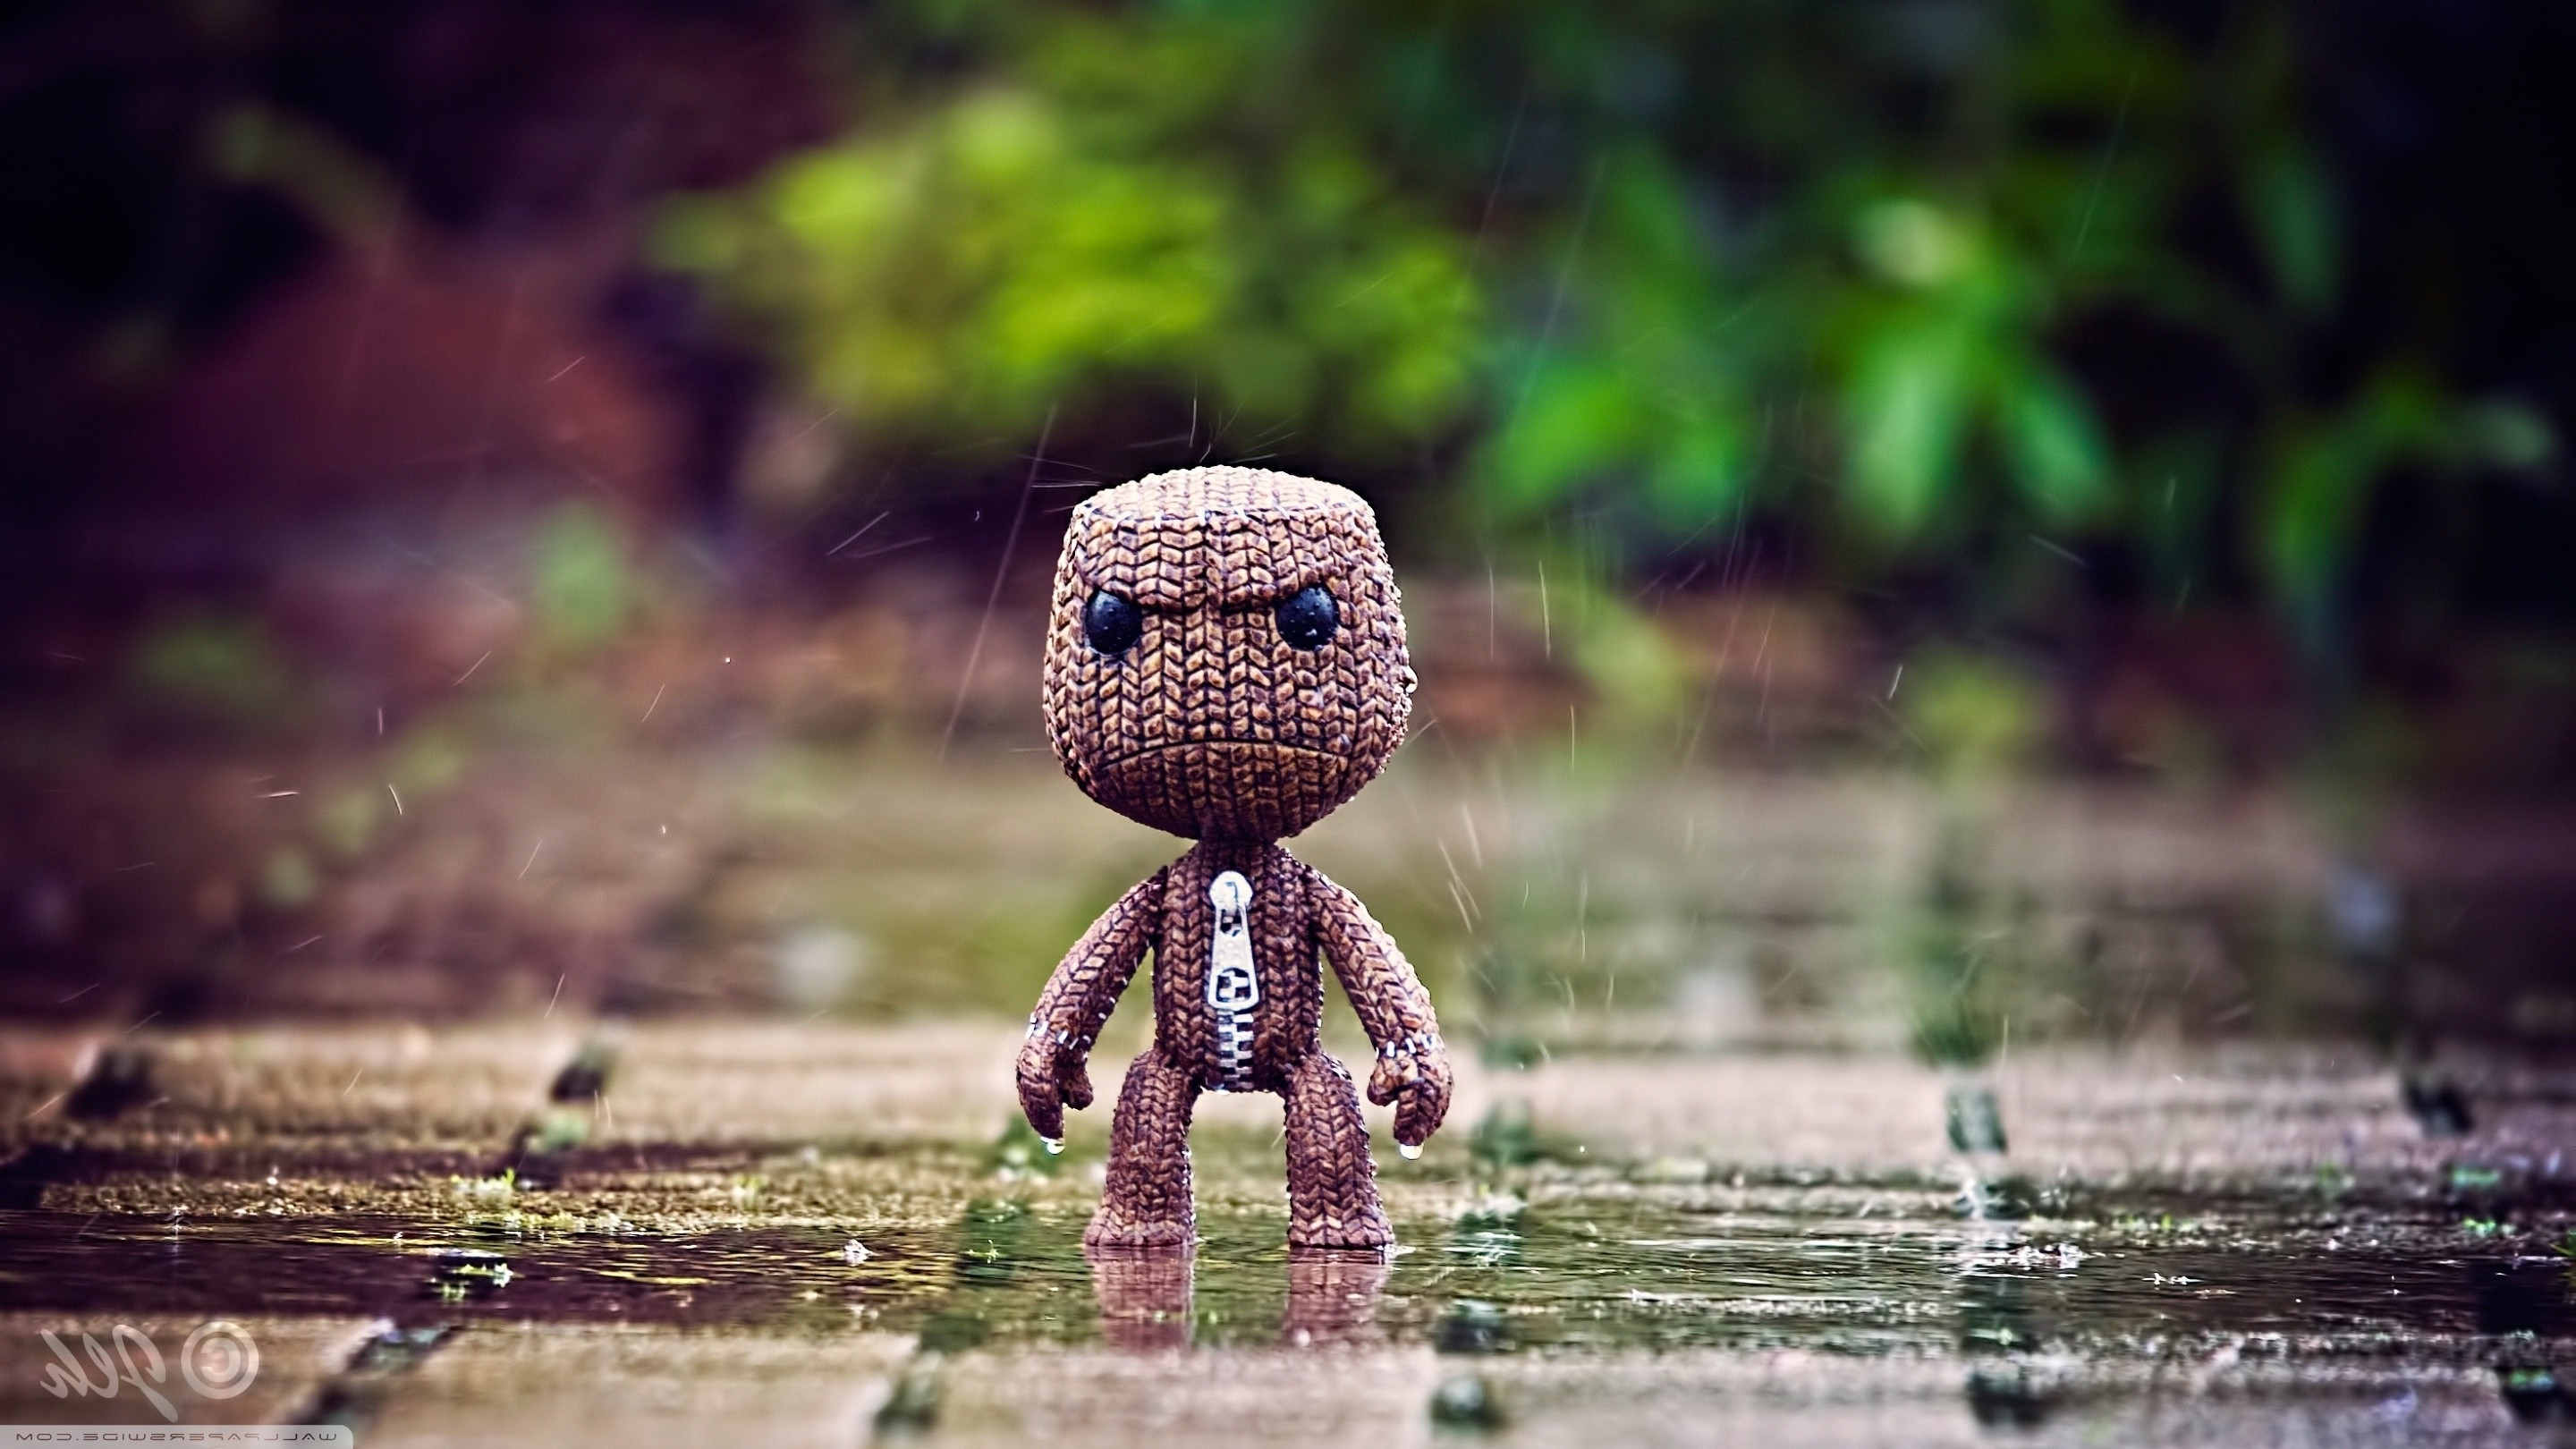 little big planet wallpapers hd / desktop and mobile backgrounds